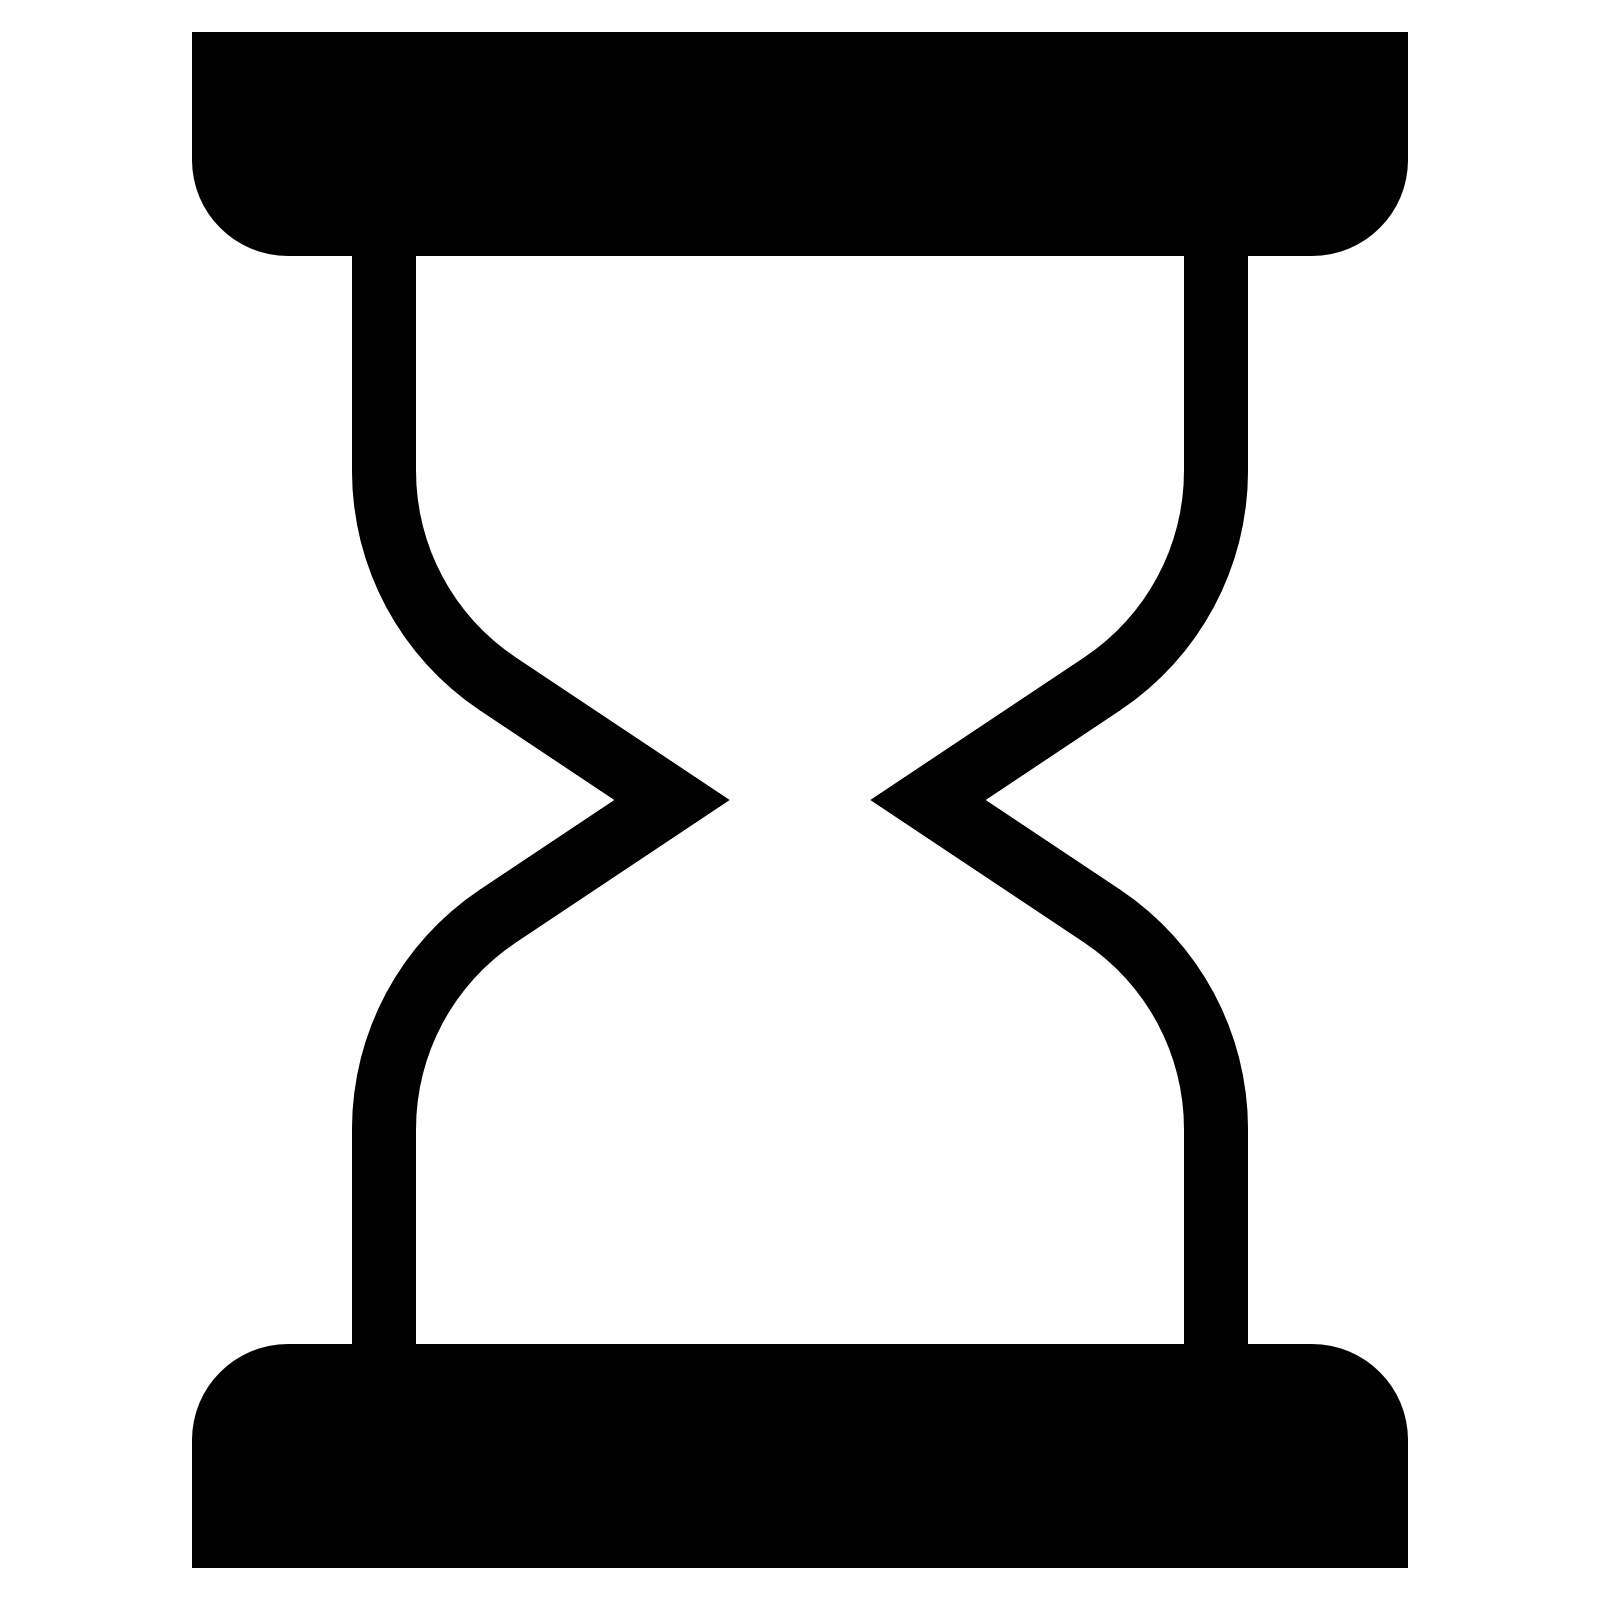 Free download best on. Hourglass clipart empty